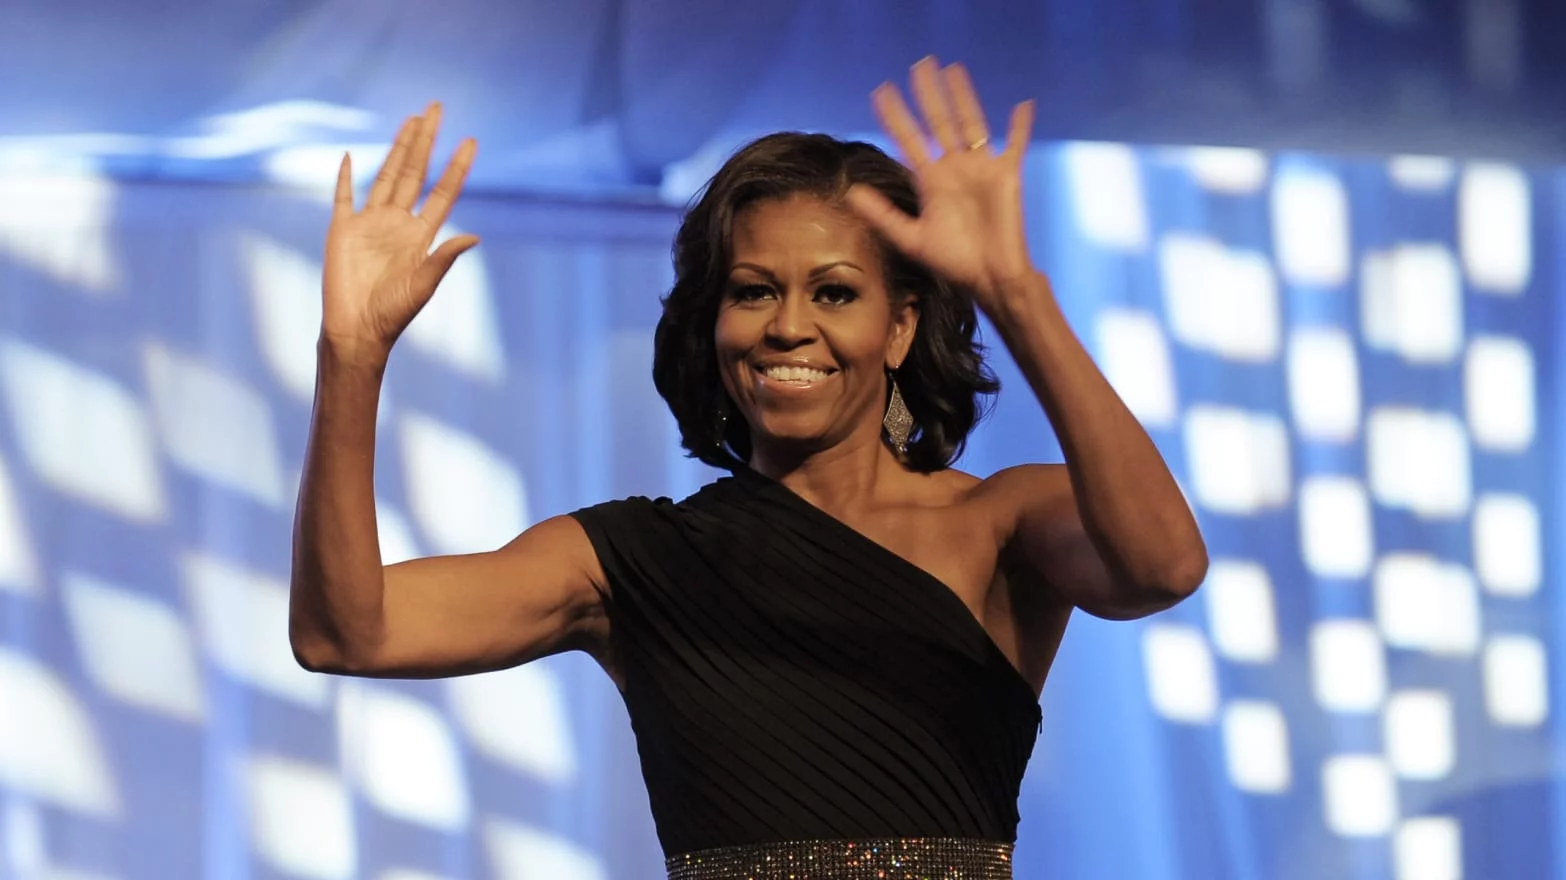 How to Get Arms like Michelle Obama